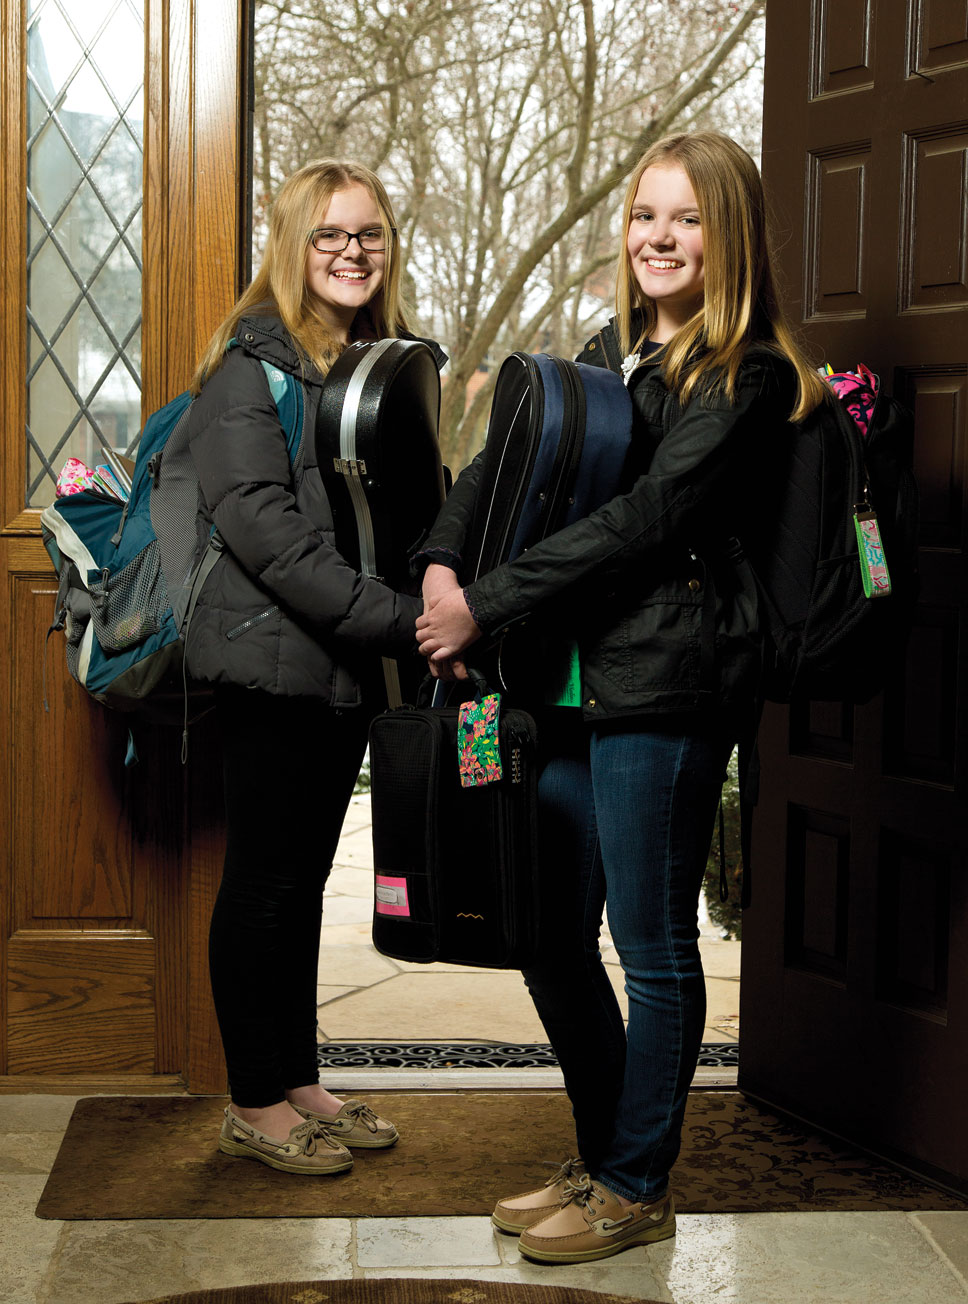 Alexandra and Hayley Zarek, two of the Zarek triplets, carry their backpacks and violins to Deer Path Middle School every day. Photography by Joel Lerner